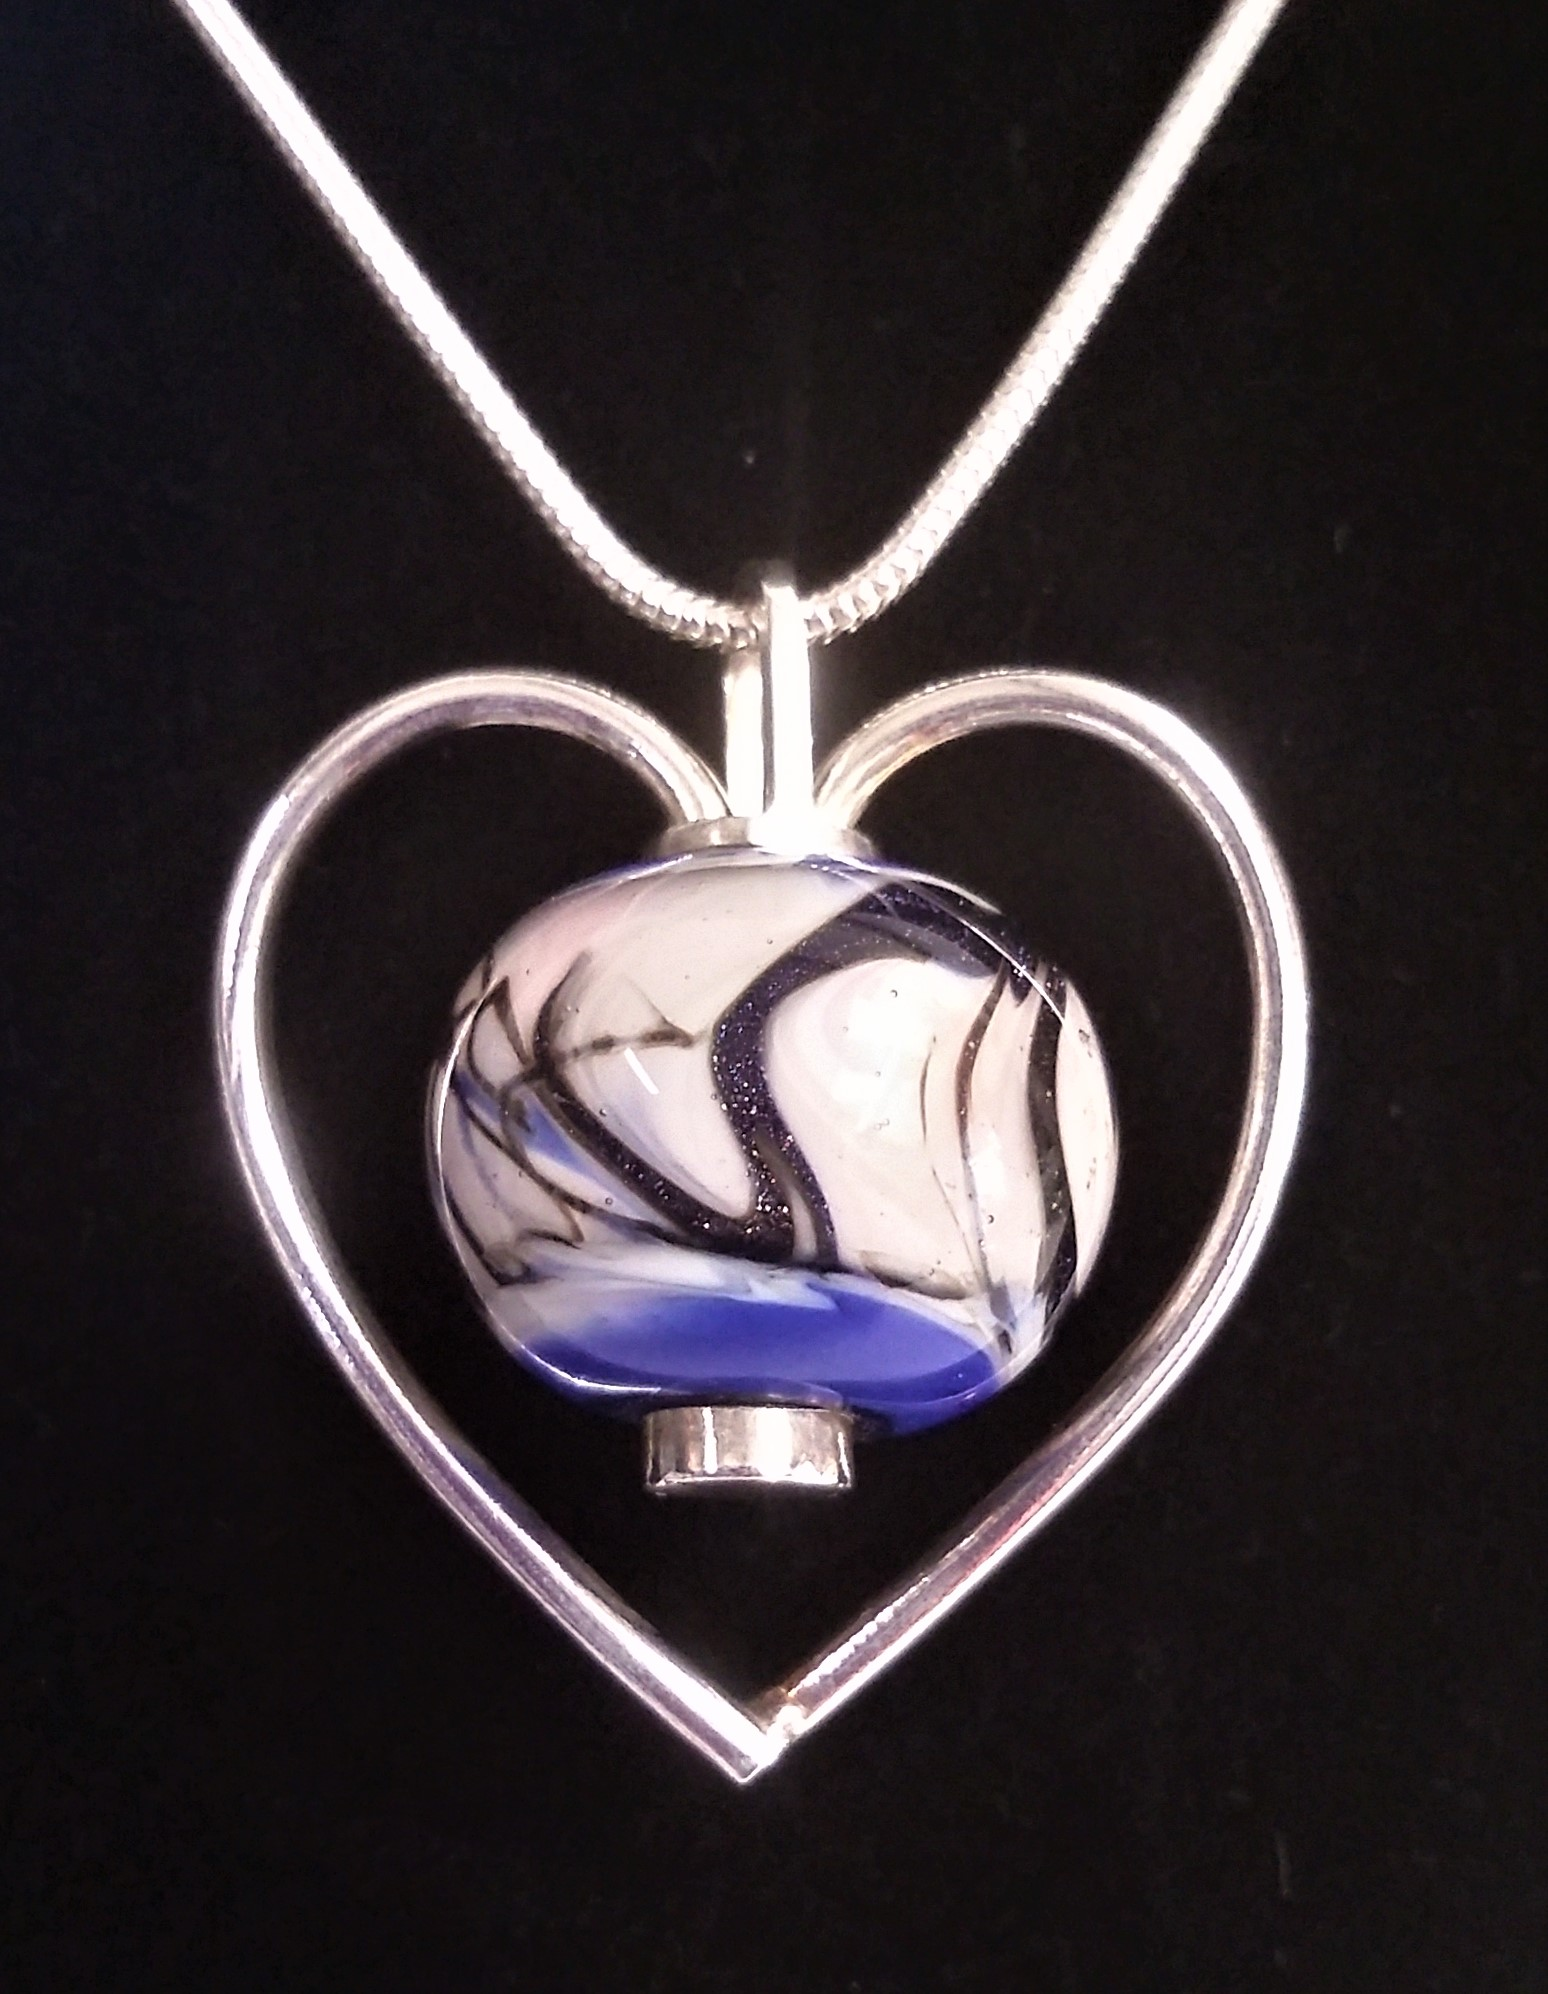 Glass bead and sterling silver necklace with a sterling silver chain. Priced at £47.50